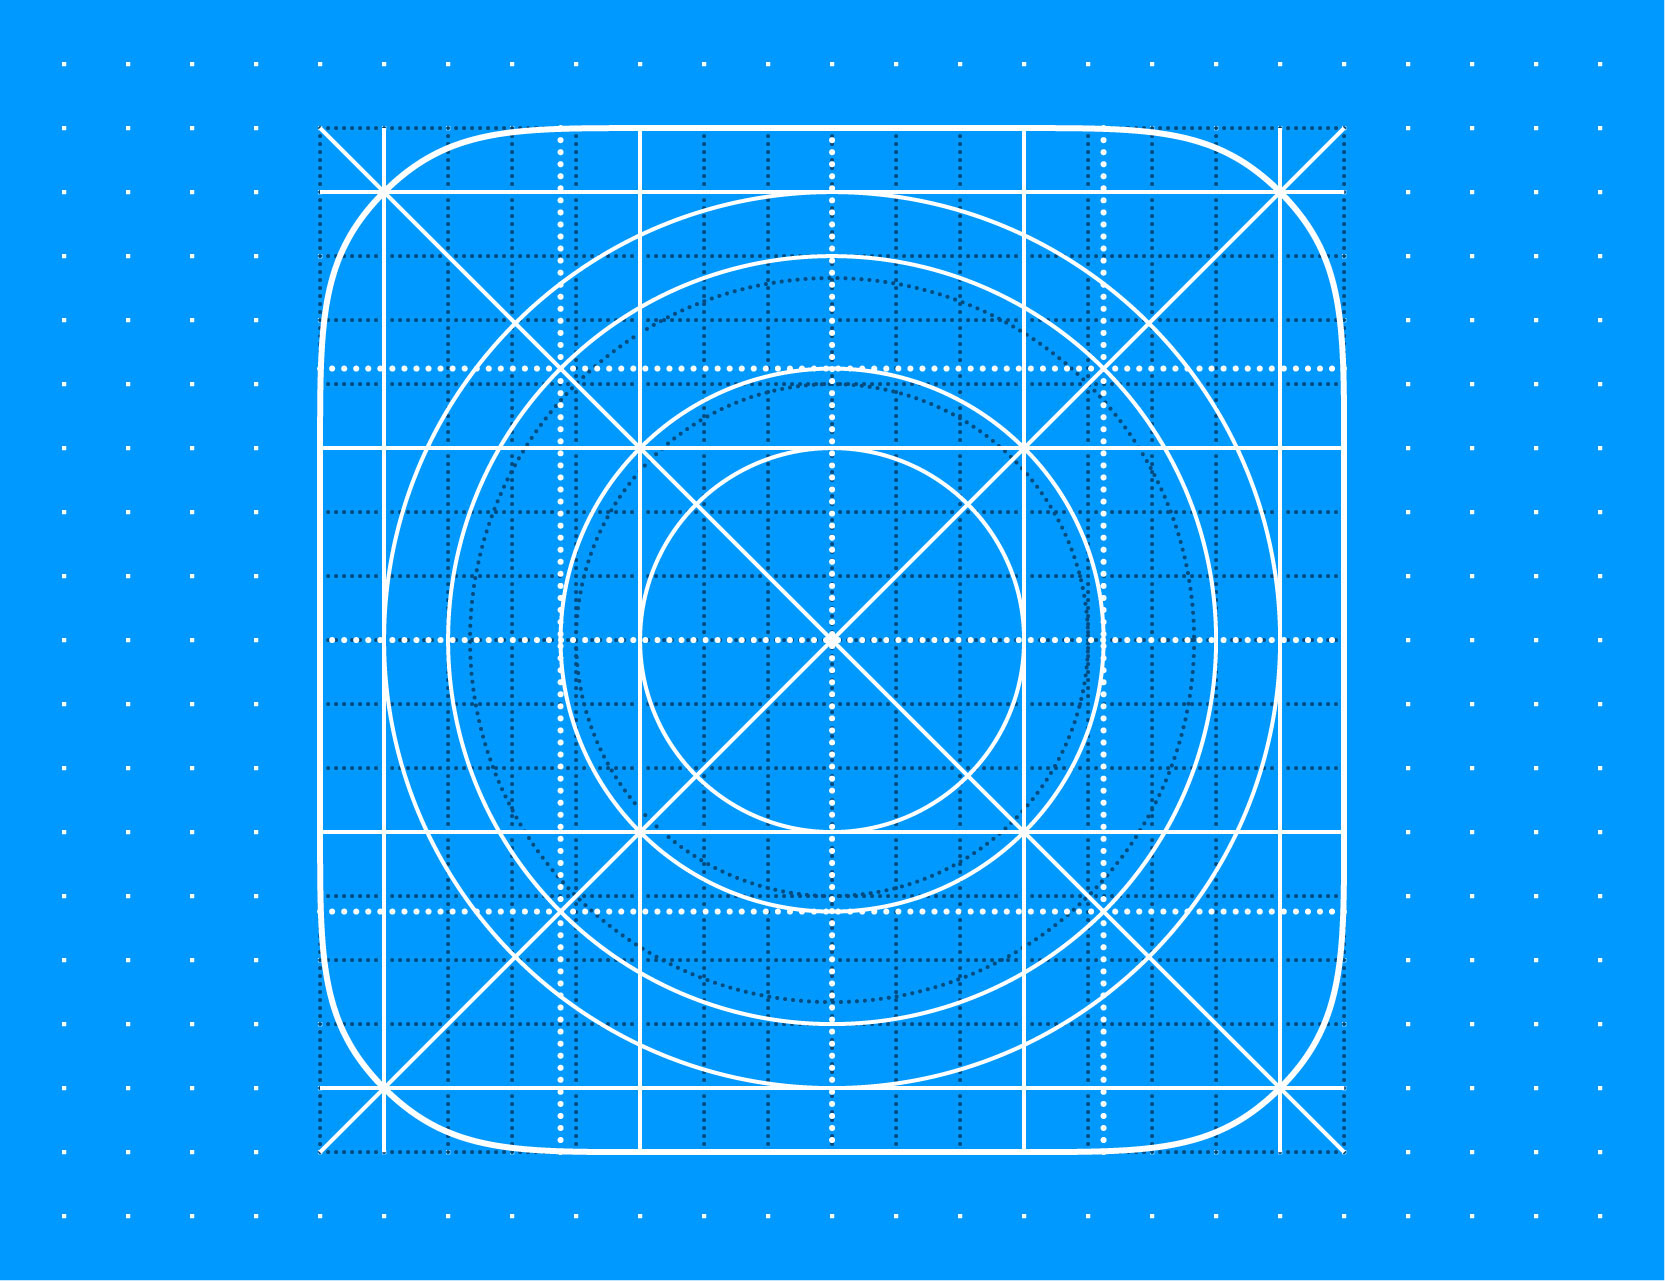 Free template ios 11 icon grid eps8 vector illustration on behance maxwellsz